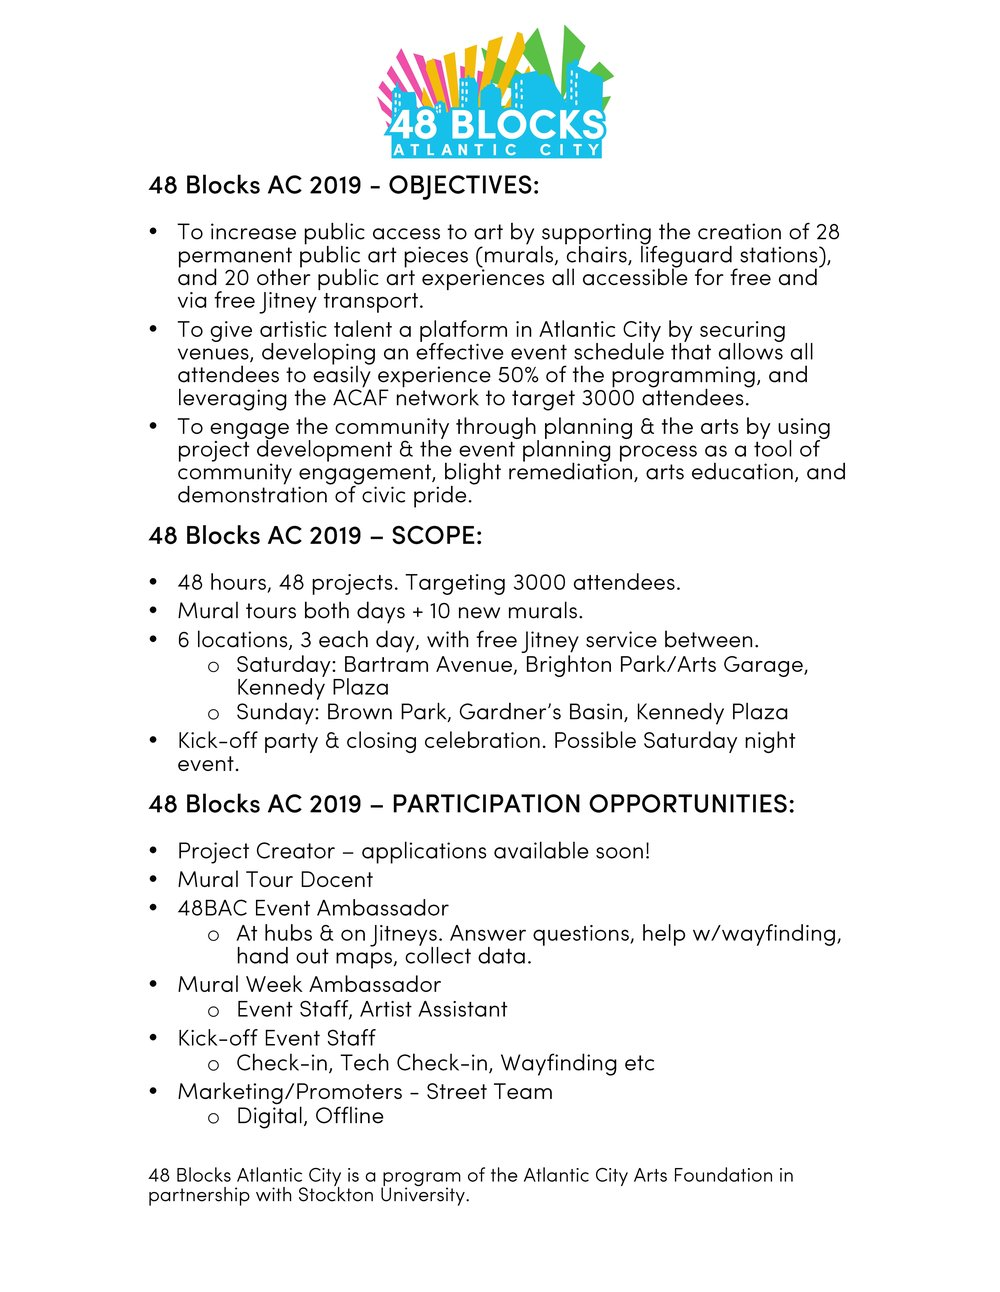 48BAC Community Forum Packet-022719_Page_3.jpg